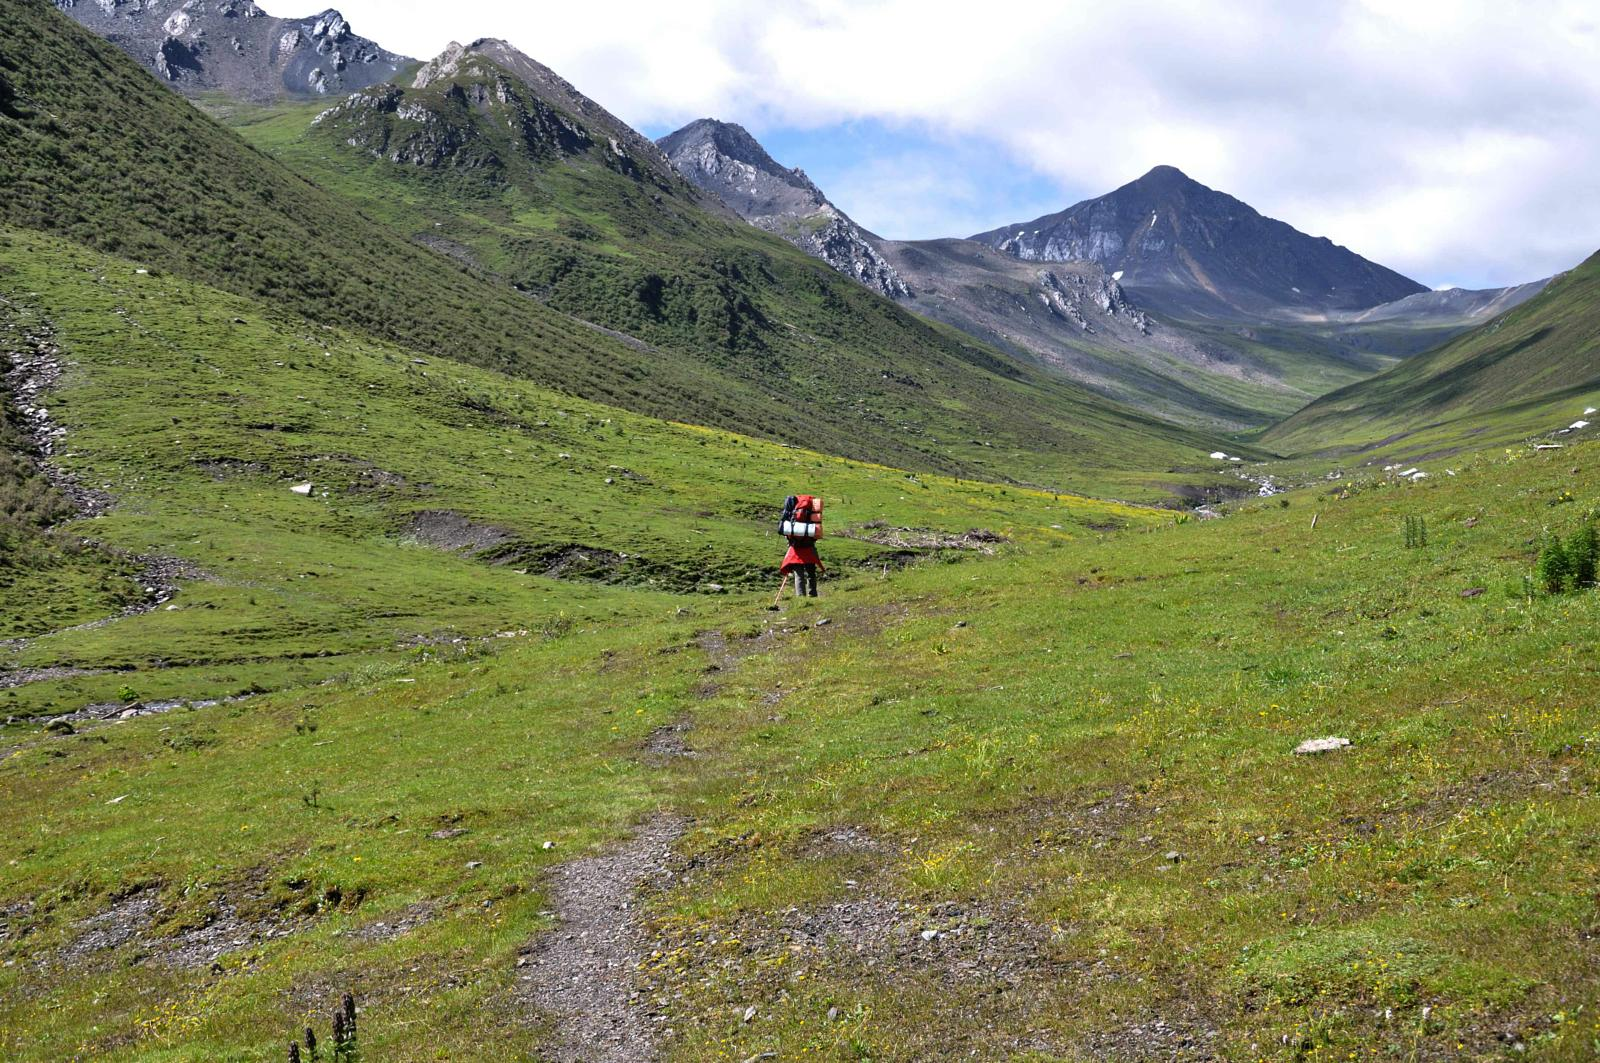 的照片 Kawaluori moutain crossing trail(卡瓦洛日神山穿越)